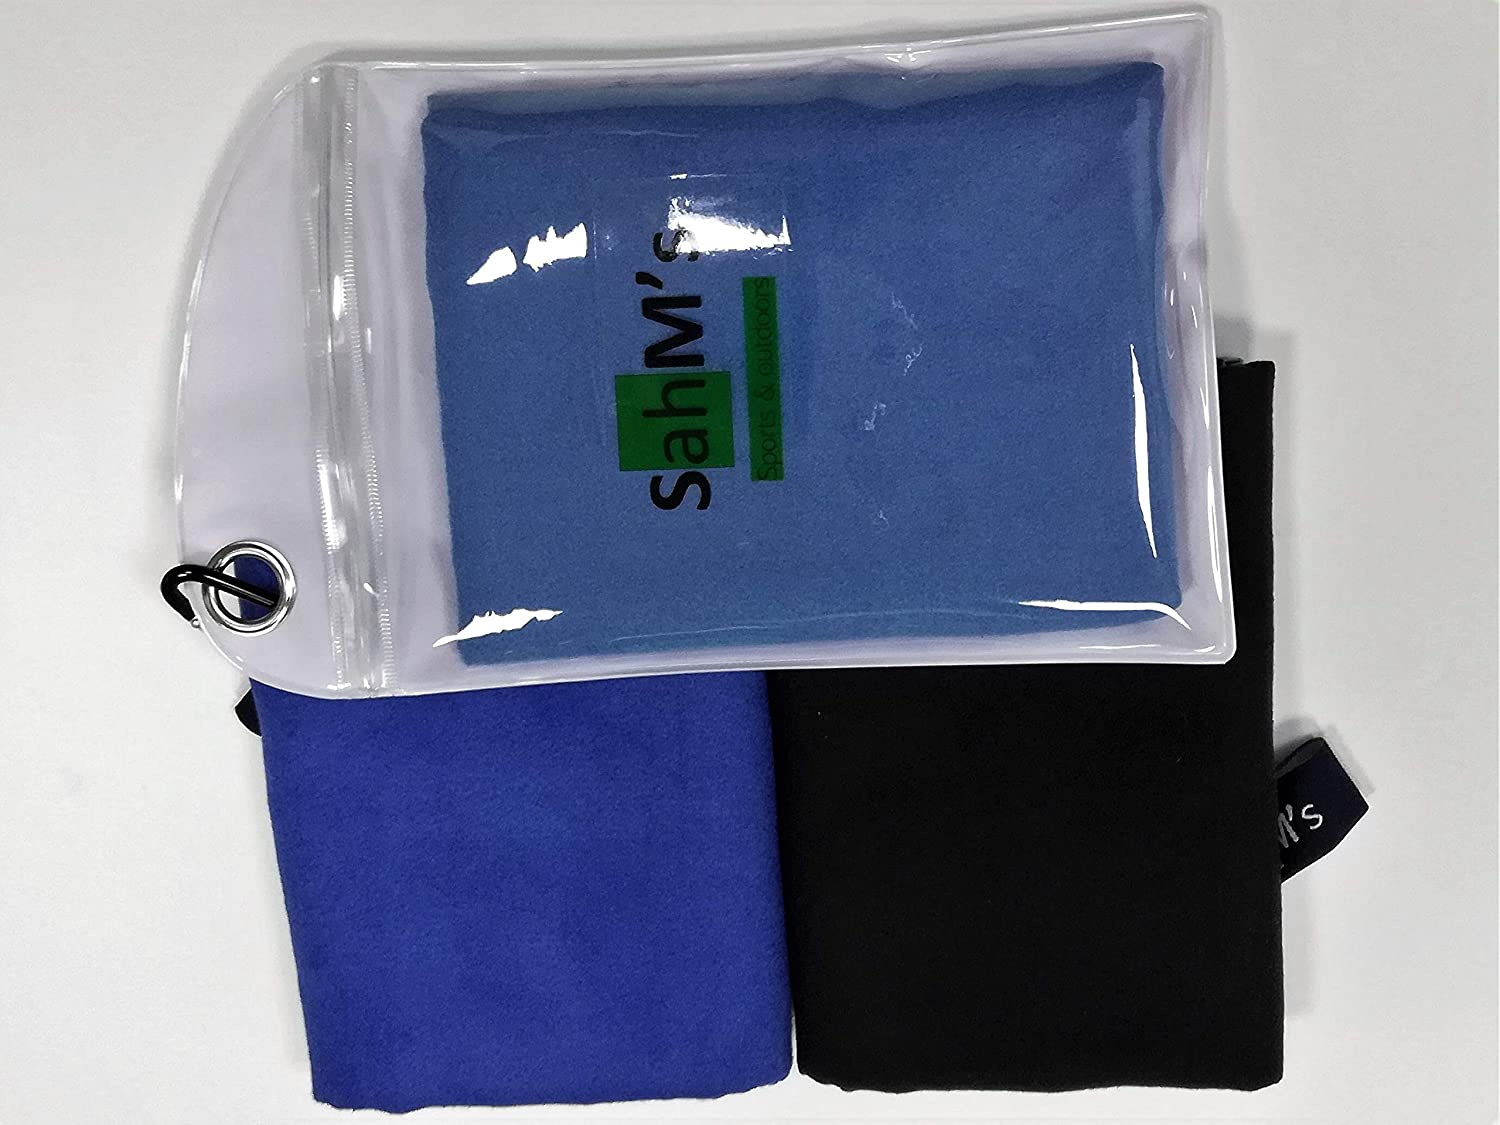 Microfiber Towel: GYM, Sports & Outdoor, Pets, Home/Kitchen + 3 pack/set of light weight light blue, dark blue & black color towels in size 40*80 cms (15.74 * 31.4 inches)+ super absorbent, quick dry, durable, reliable, ultra soft & gentle on s